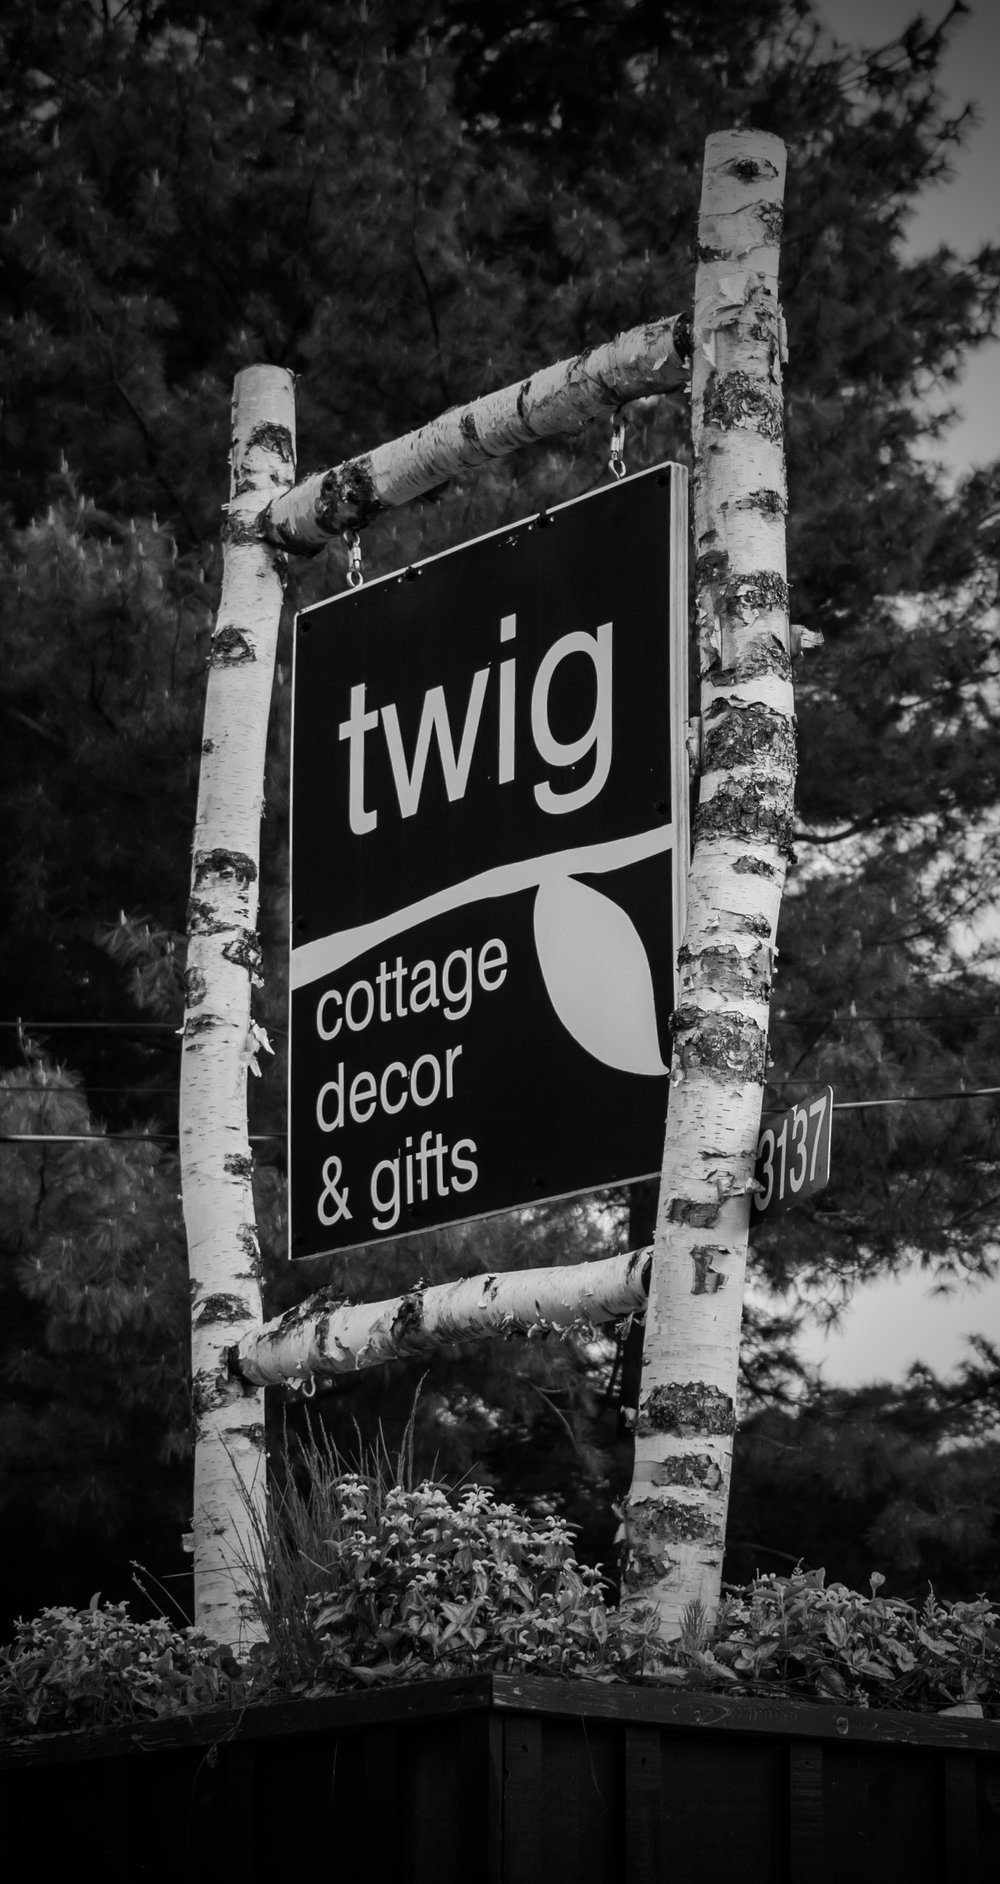 Twig is a uniquecottage decor & gift storein Bala  -